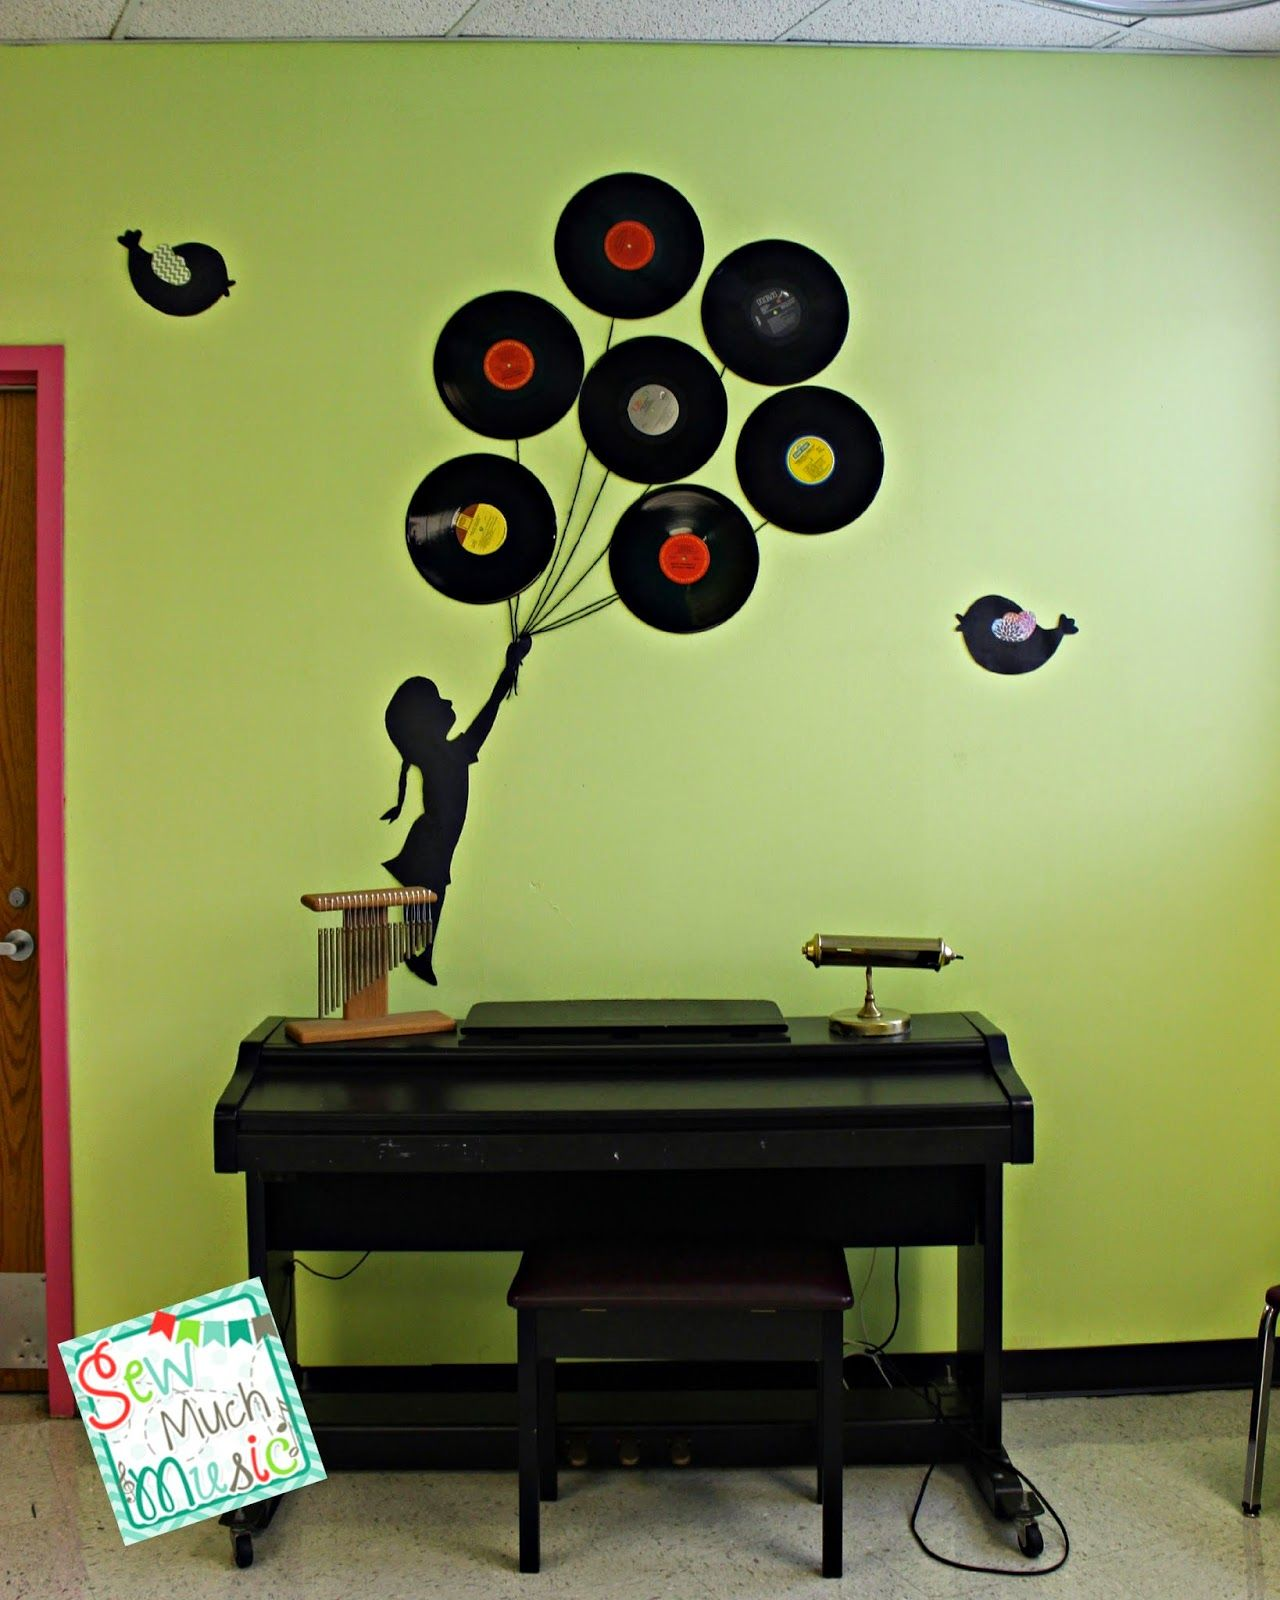 Music Classroom Design ~ Sew much music balloon girl silhouette in a